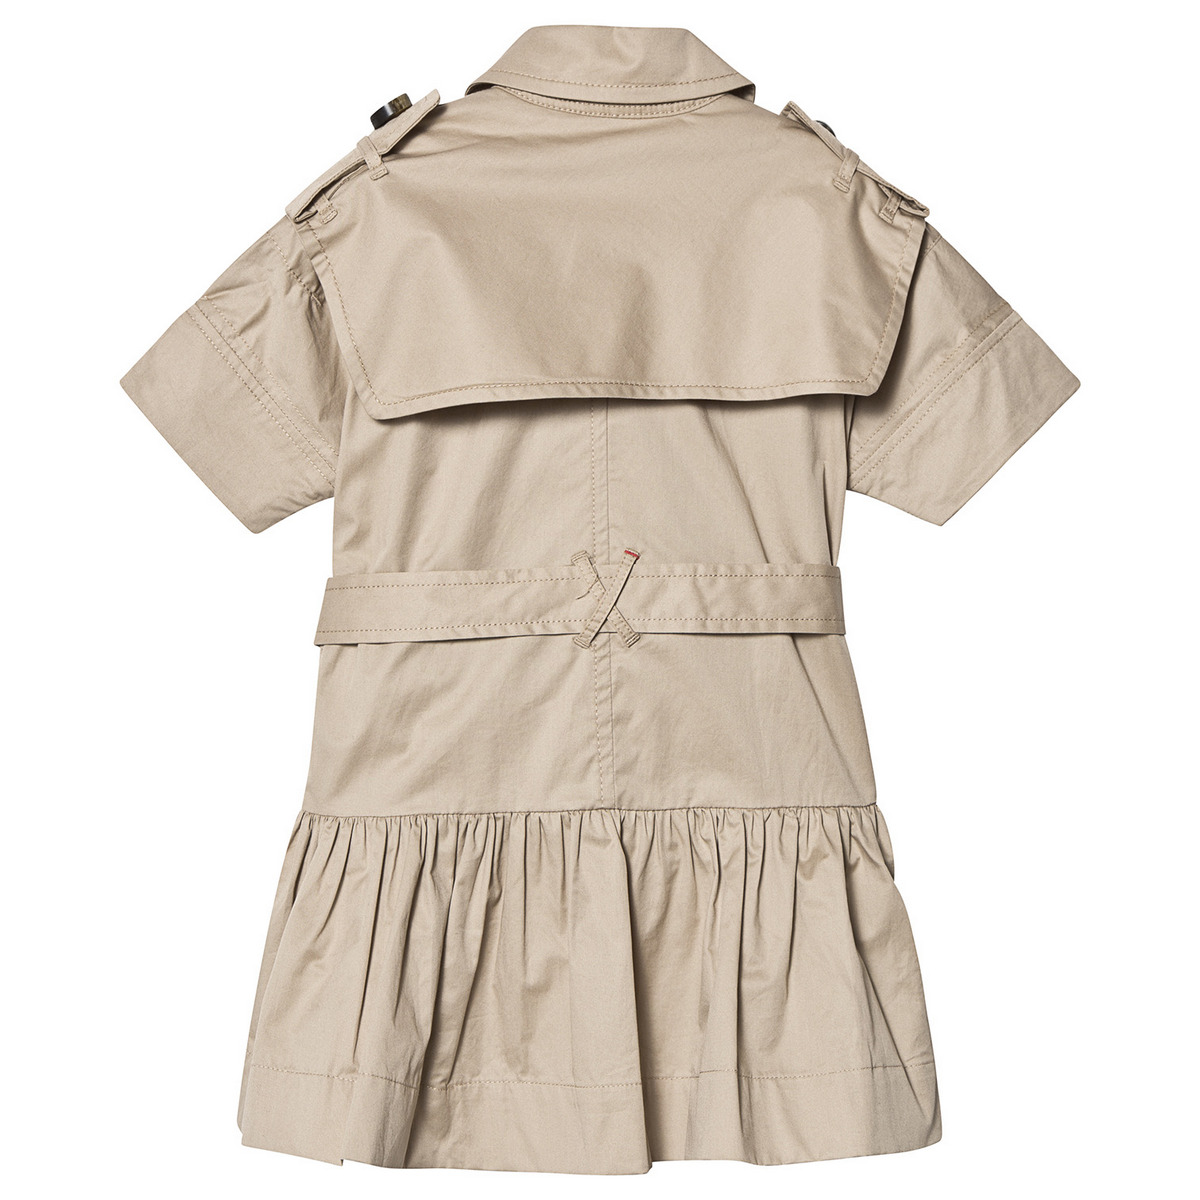 Burberry beige 2 - Burberry Beige Cynthie Trench Dress